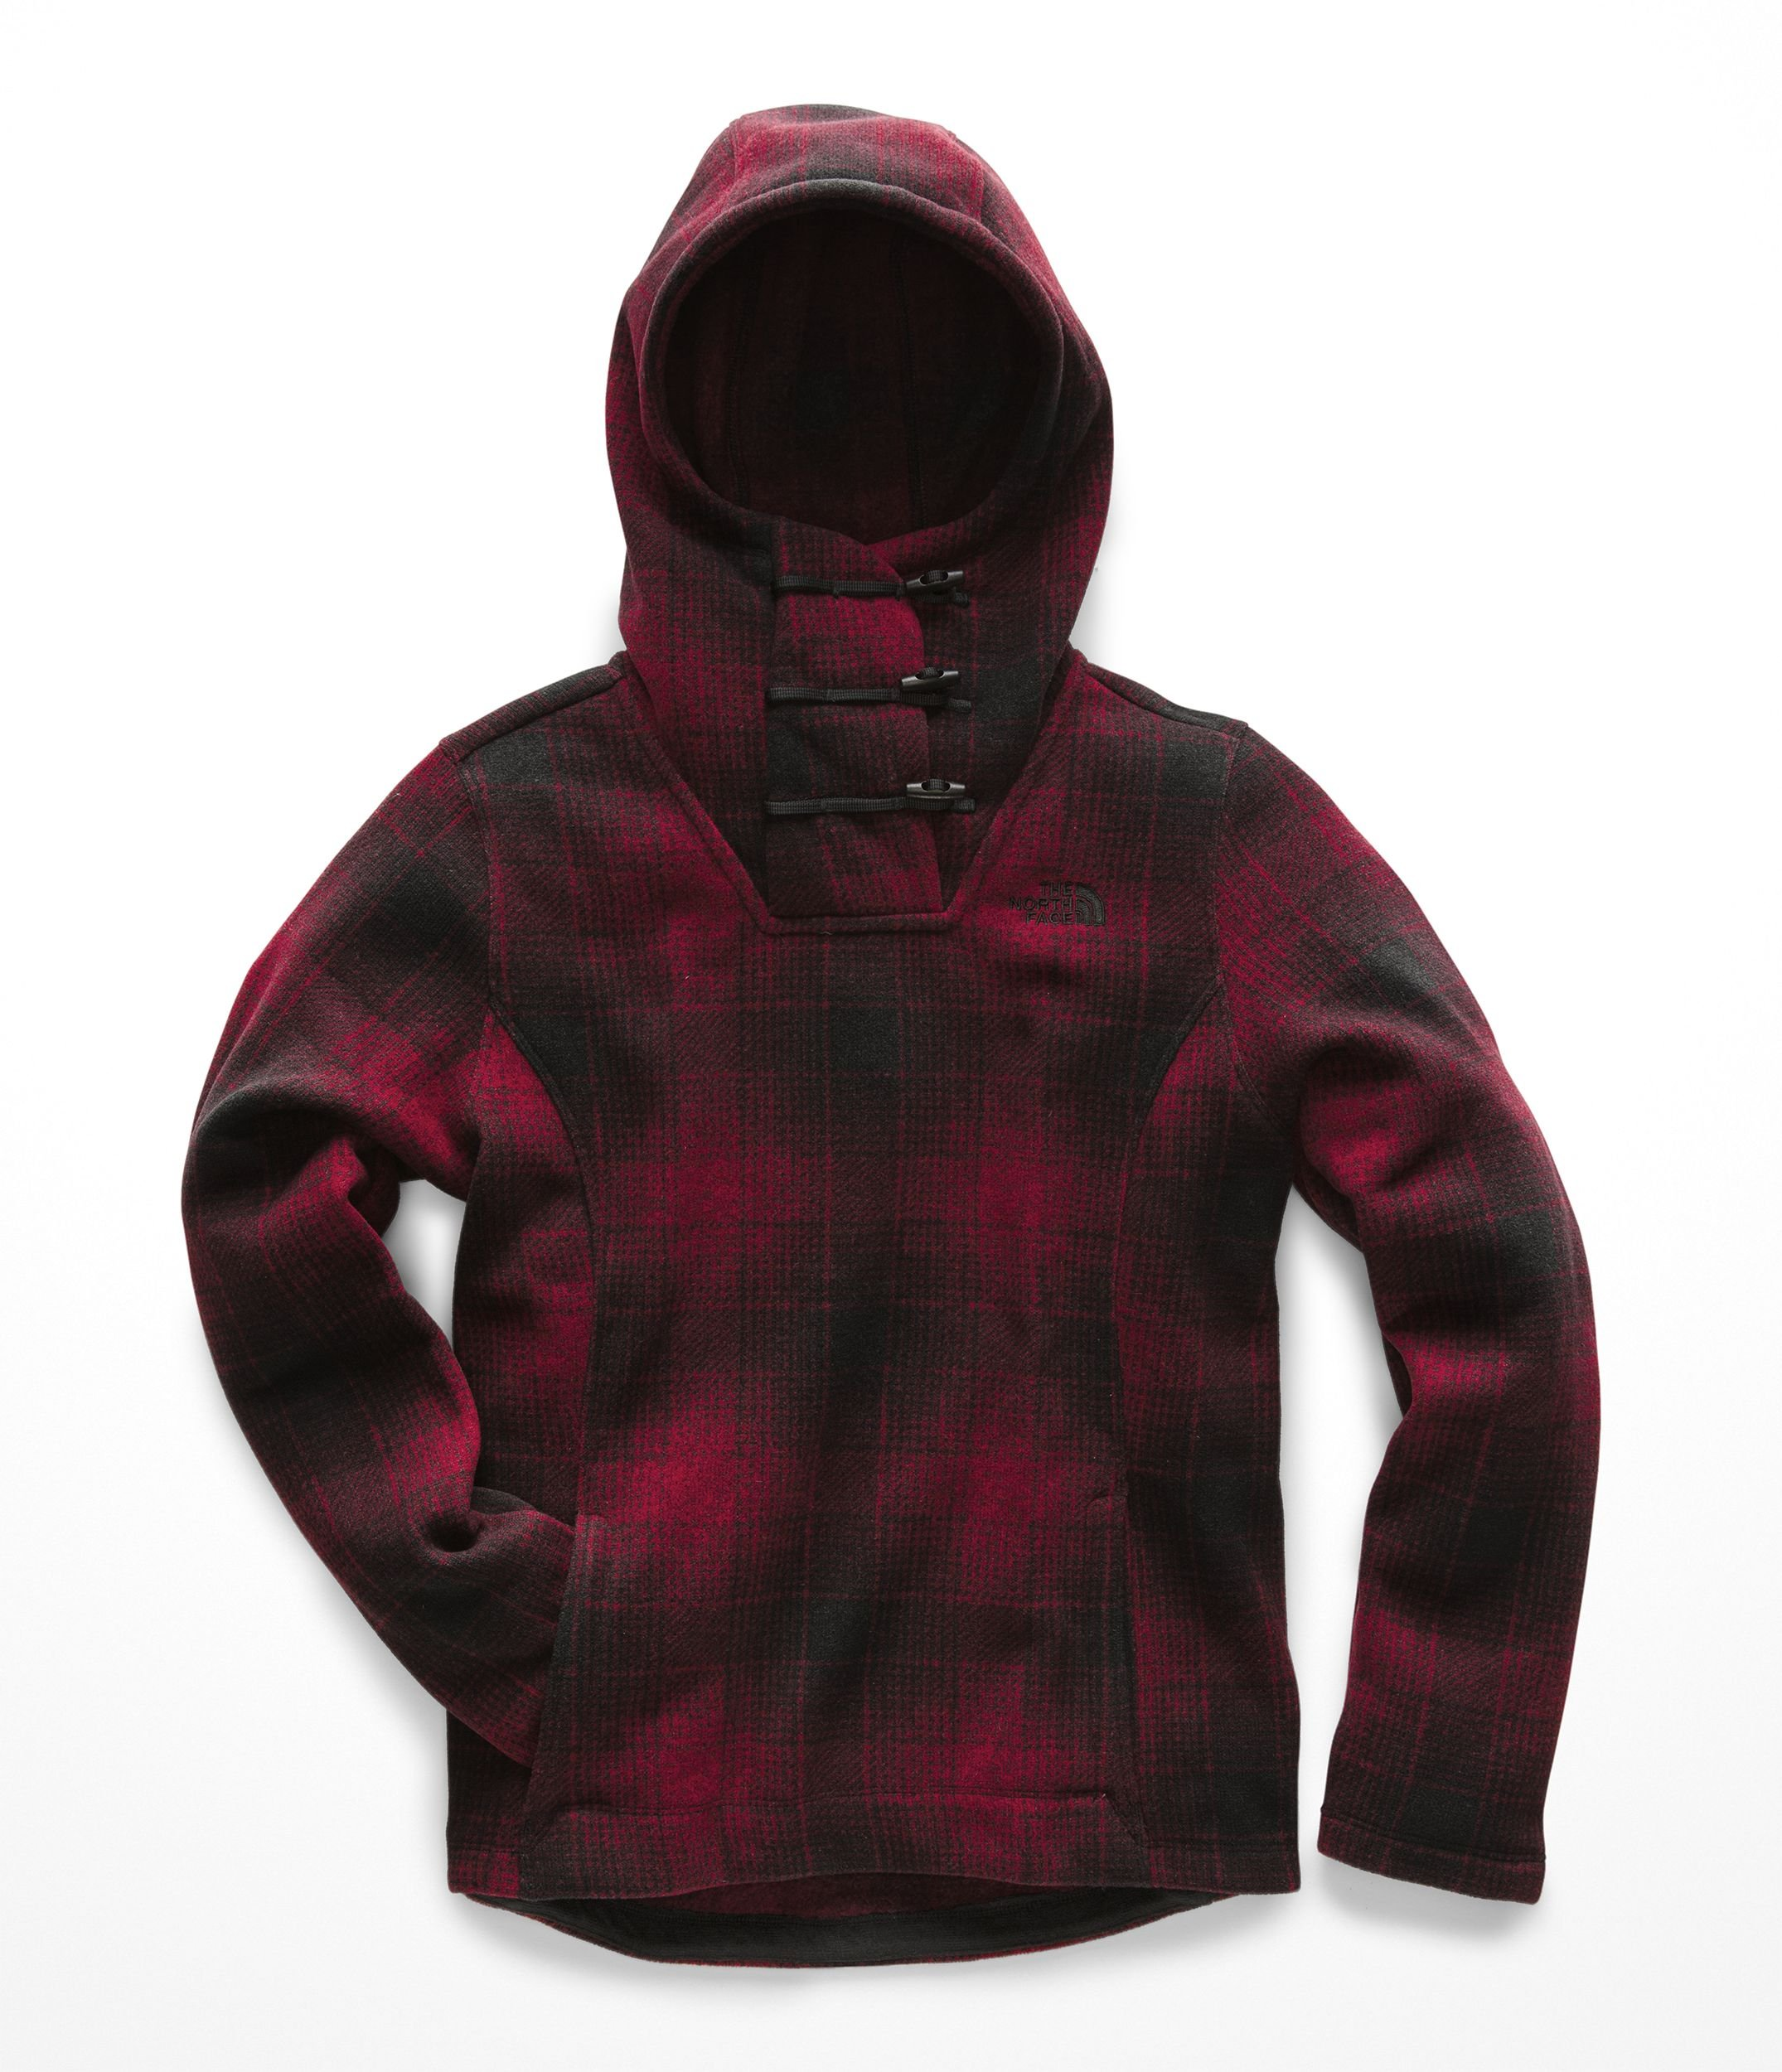 The North Face Womens Crescent Hooded Pullover - Rumba Red Ombre Plaid Small Print - L